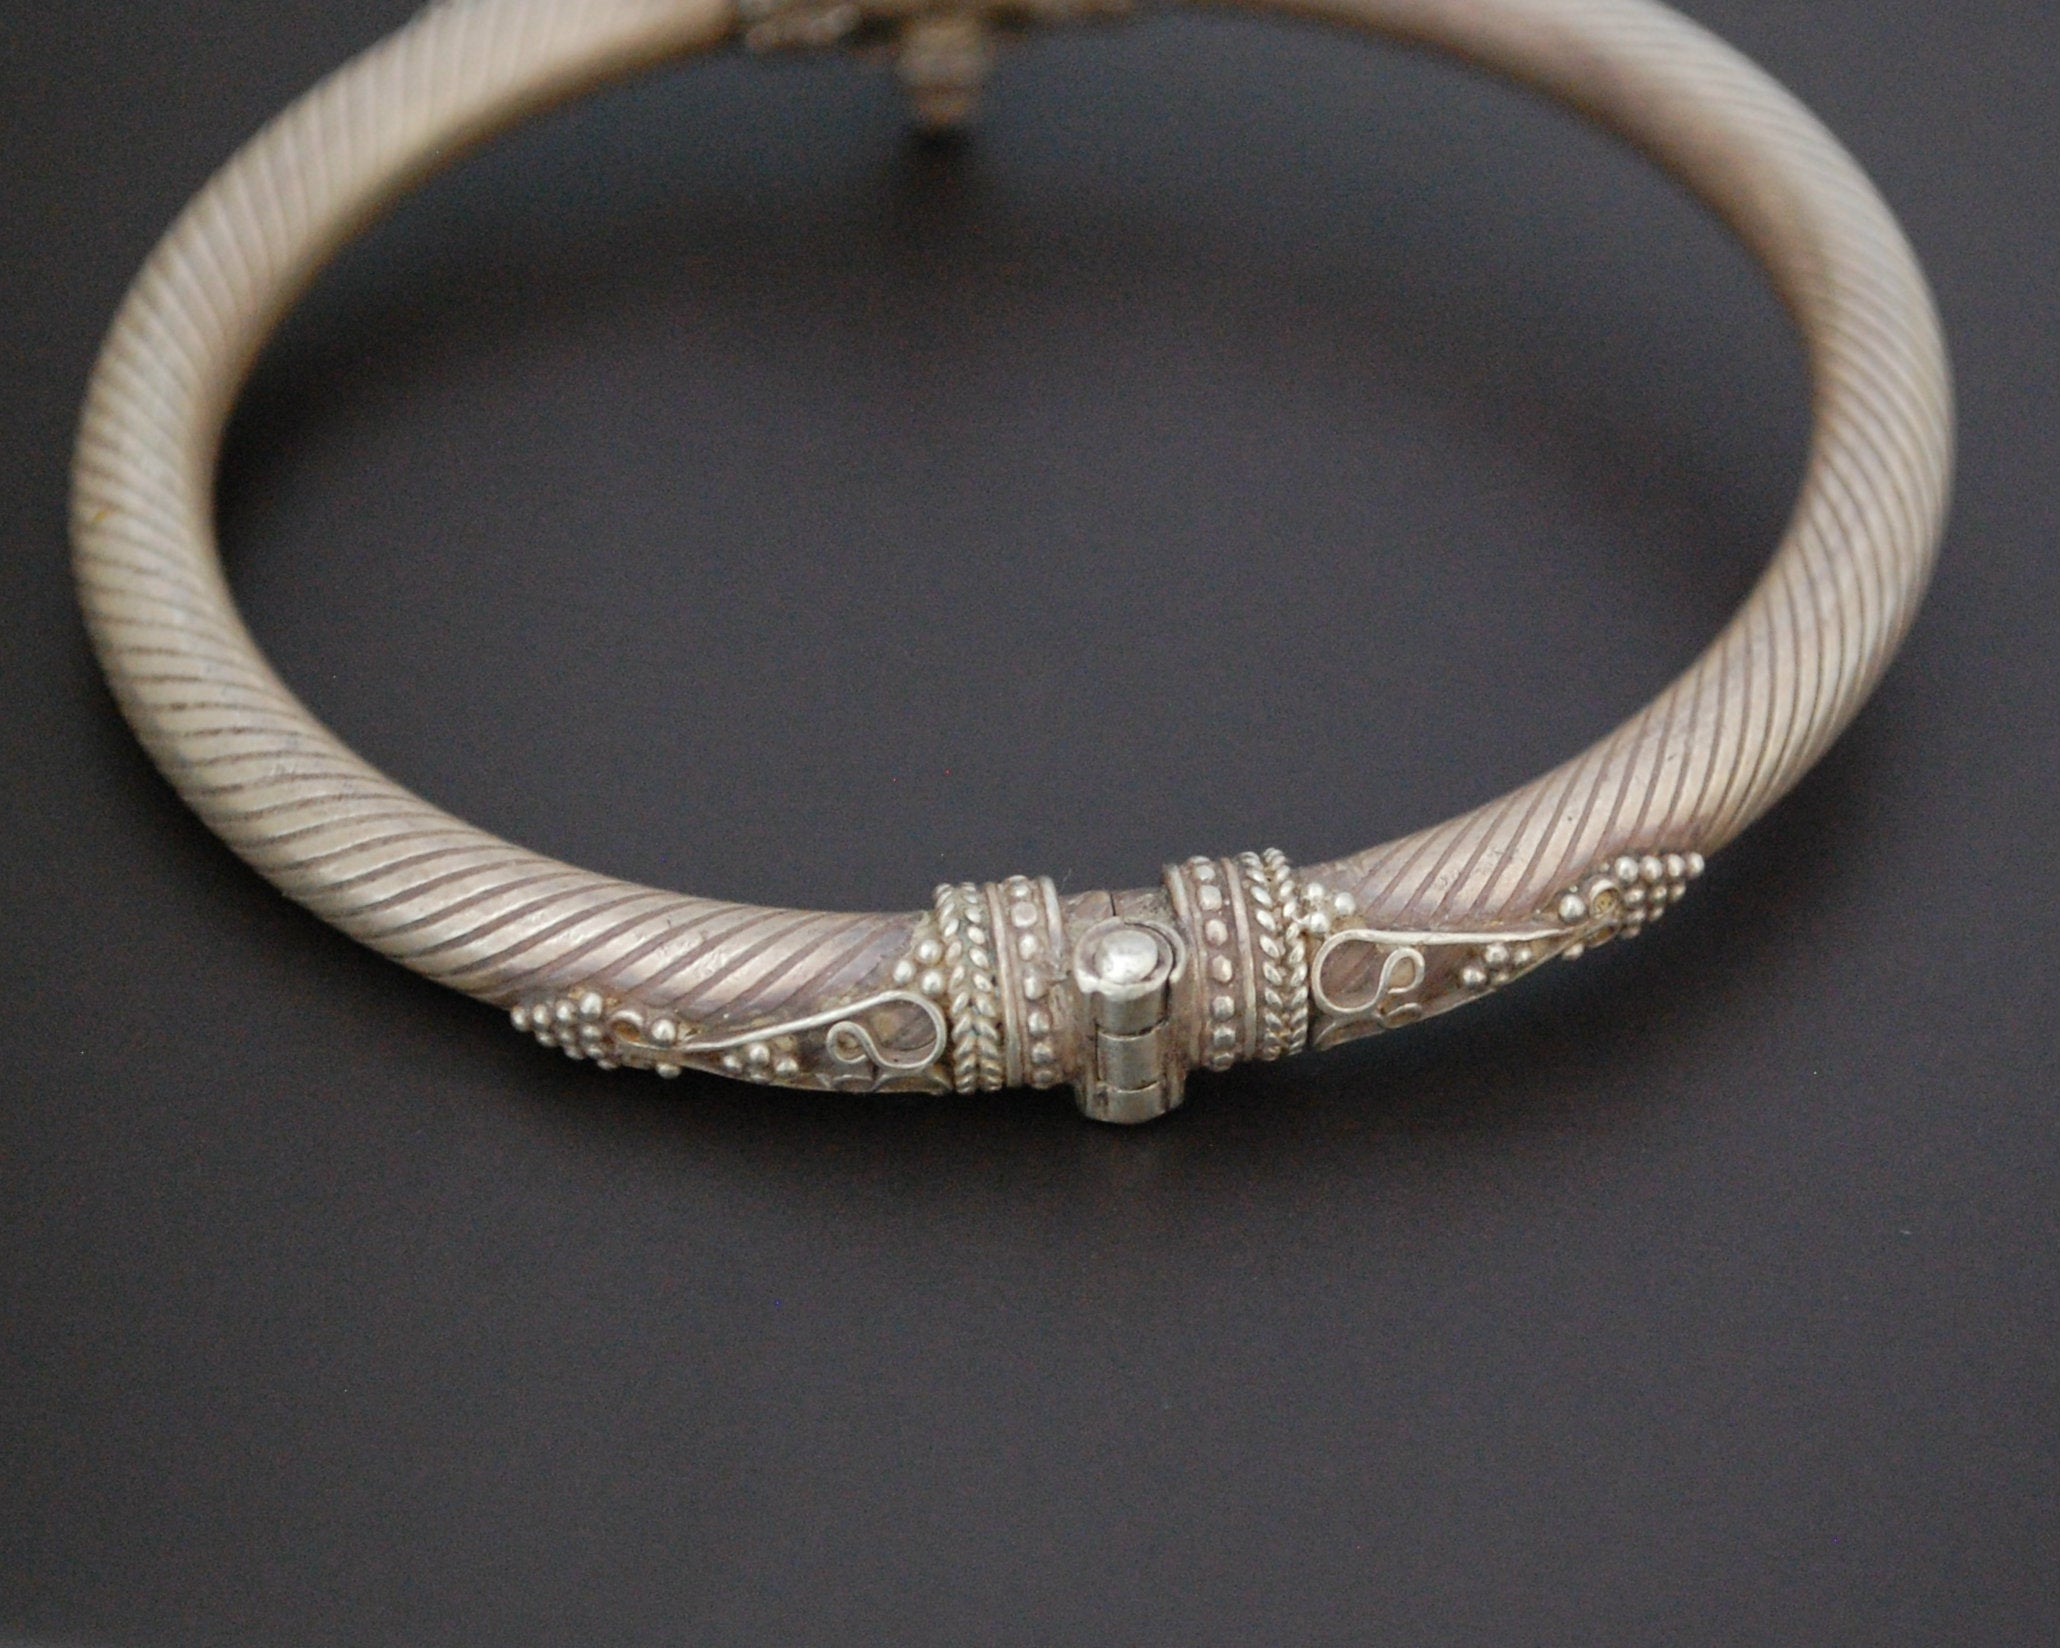 Ethnic Indian Silver Bracelet from India - Hinged